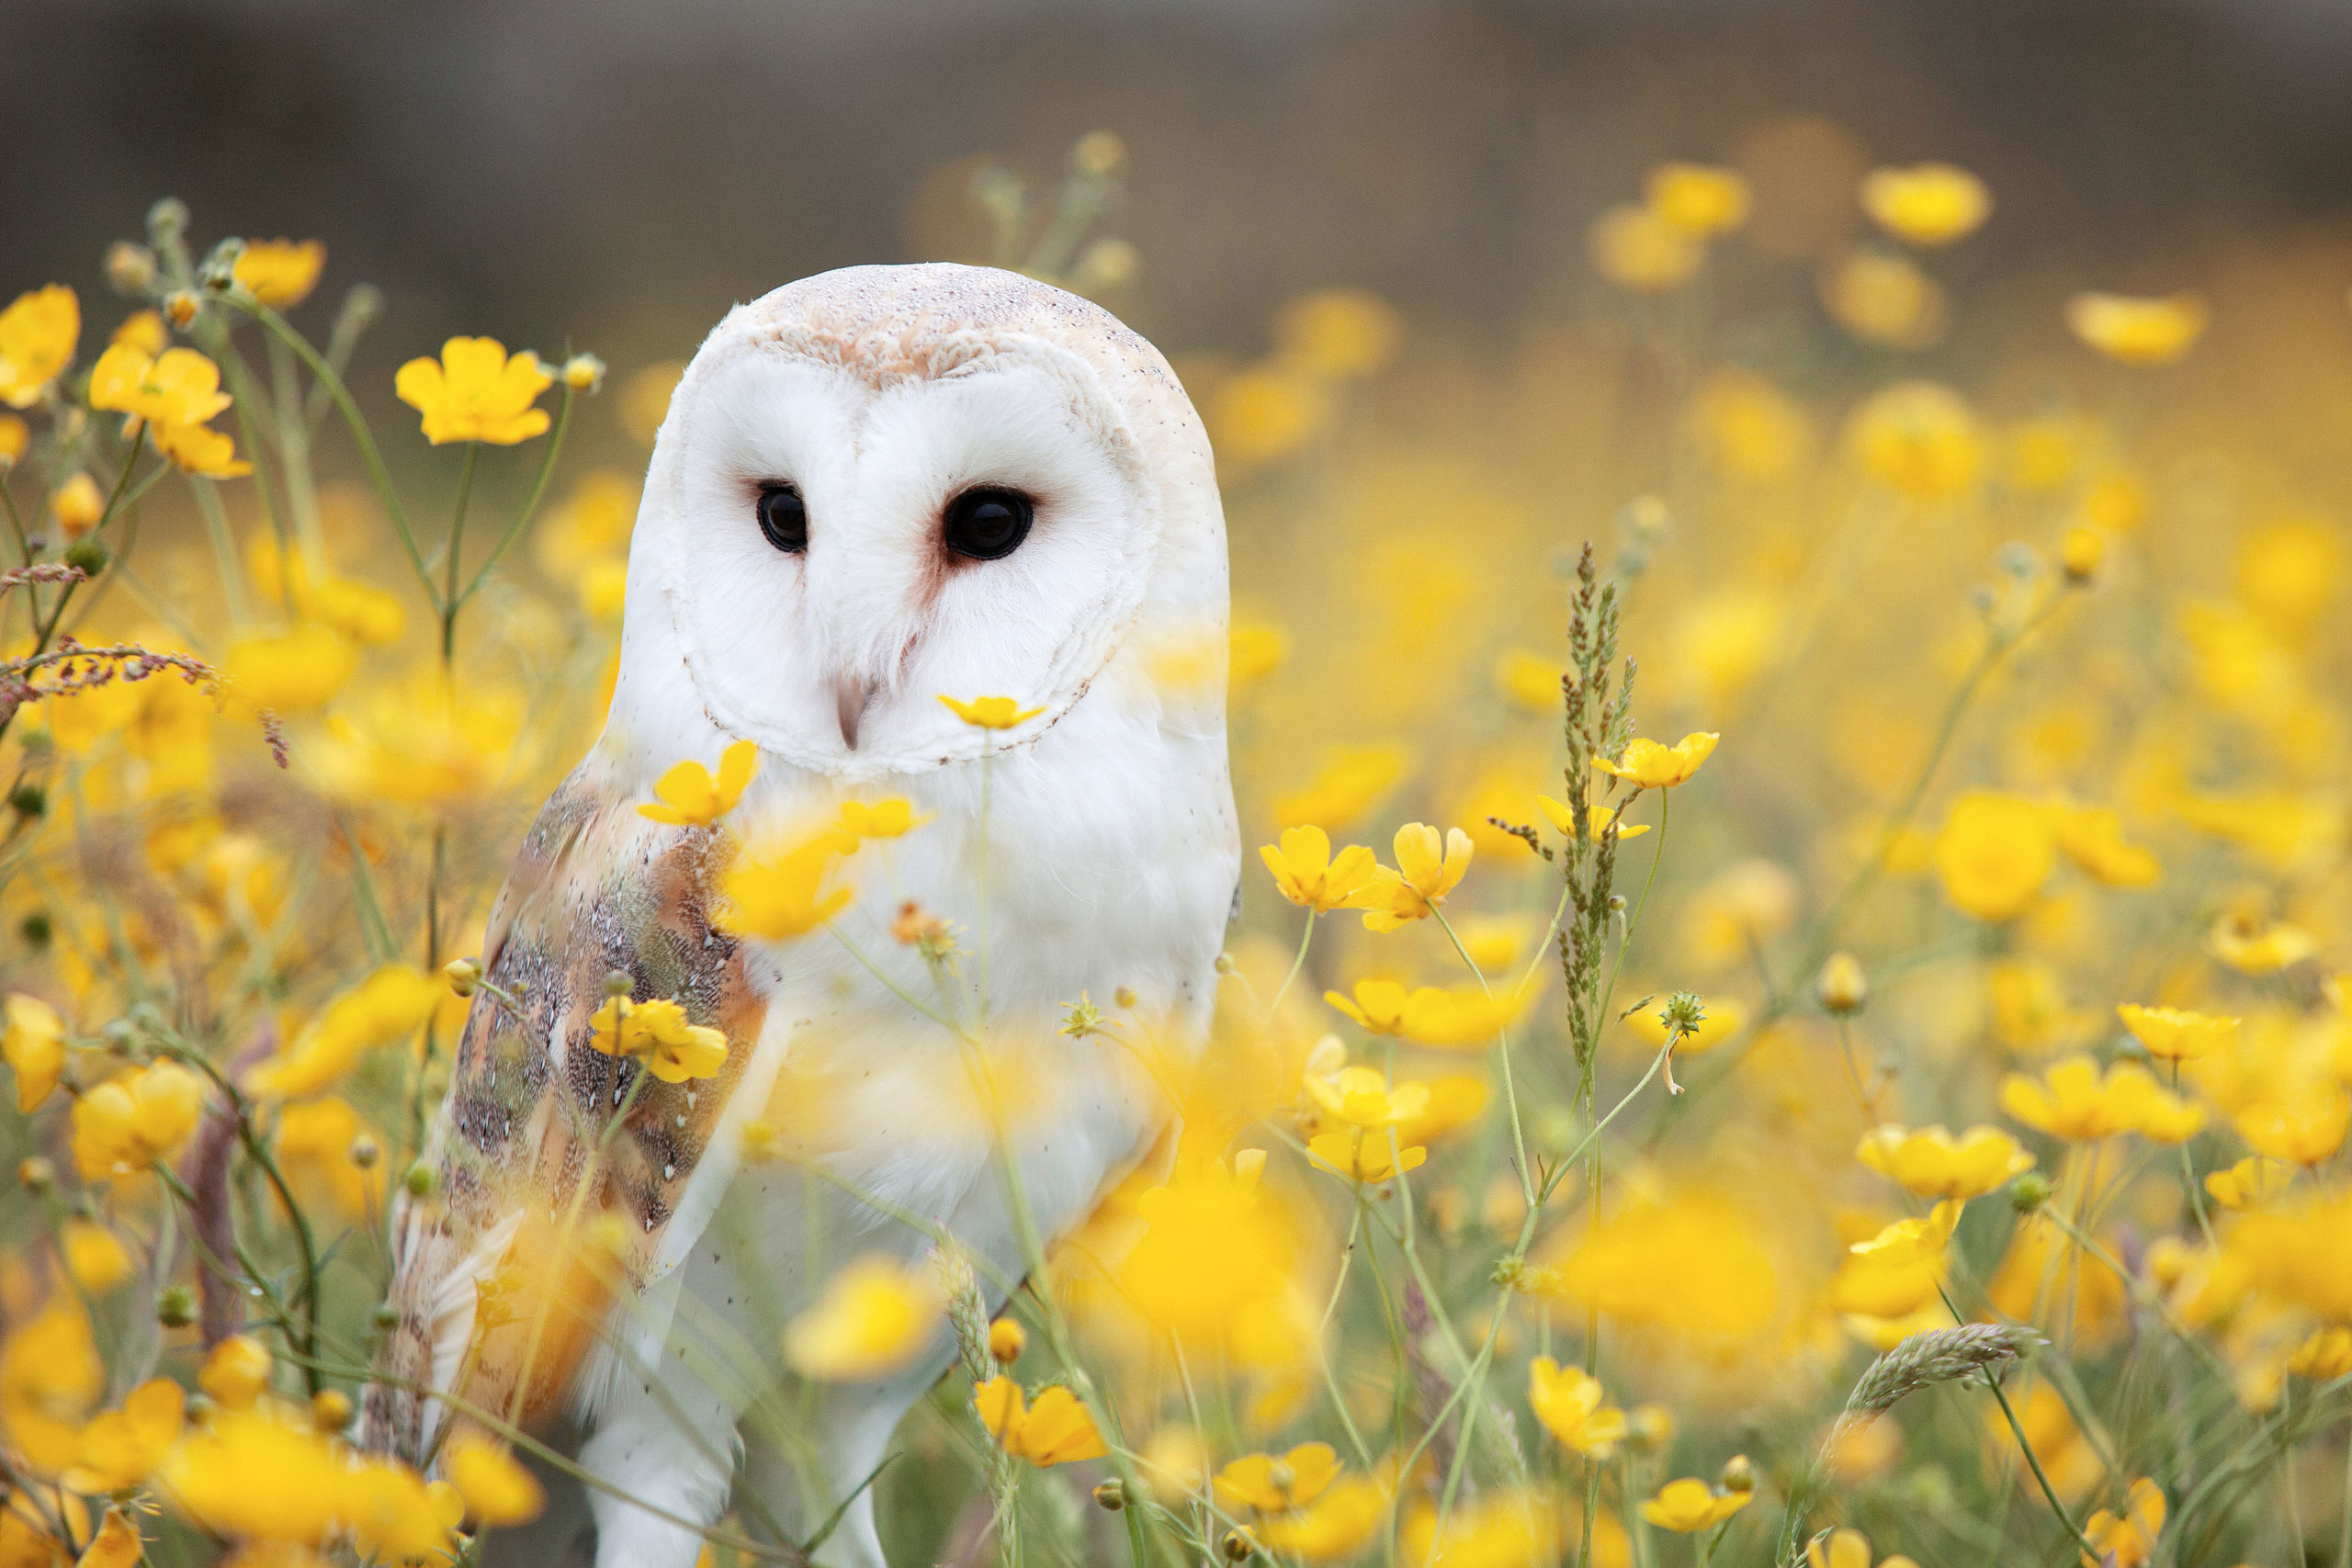 White owl in flowers